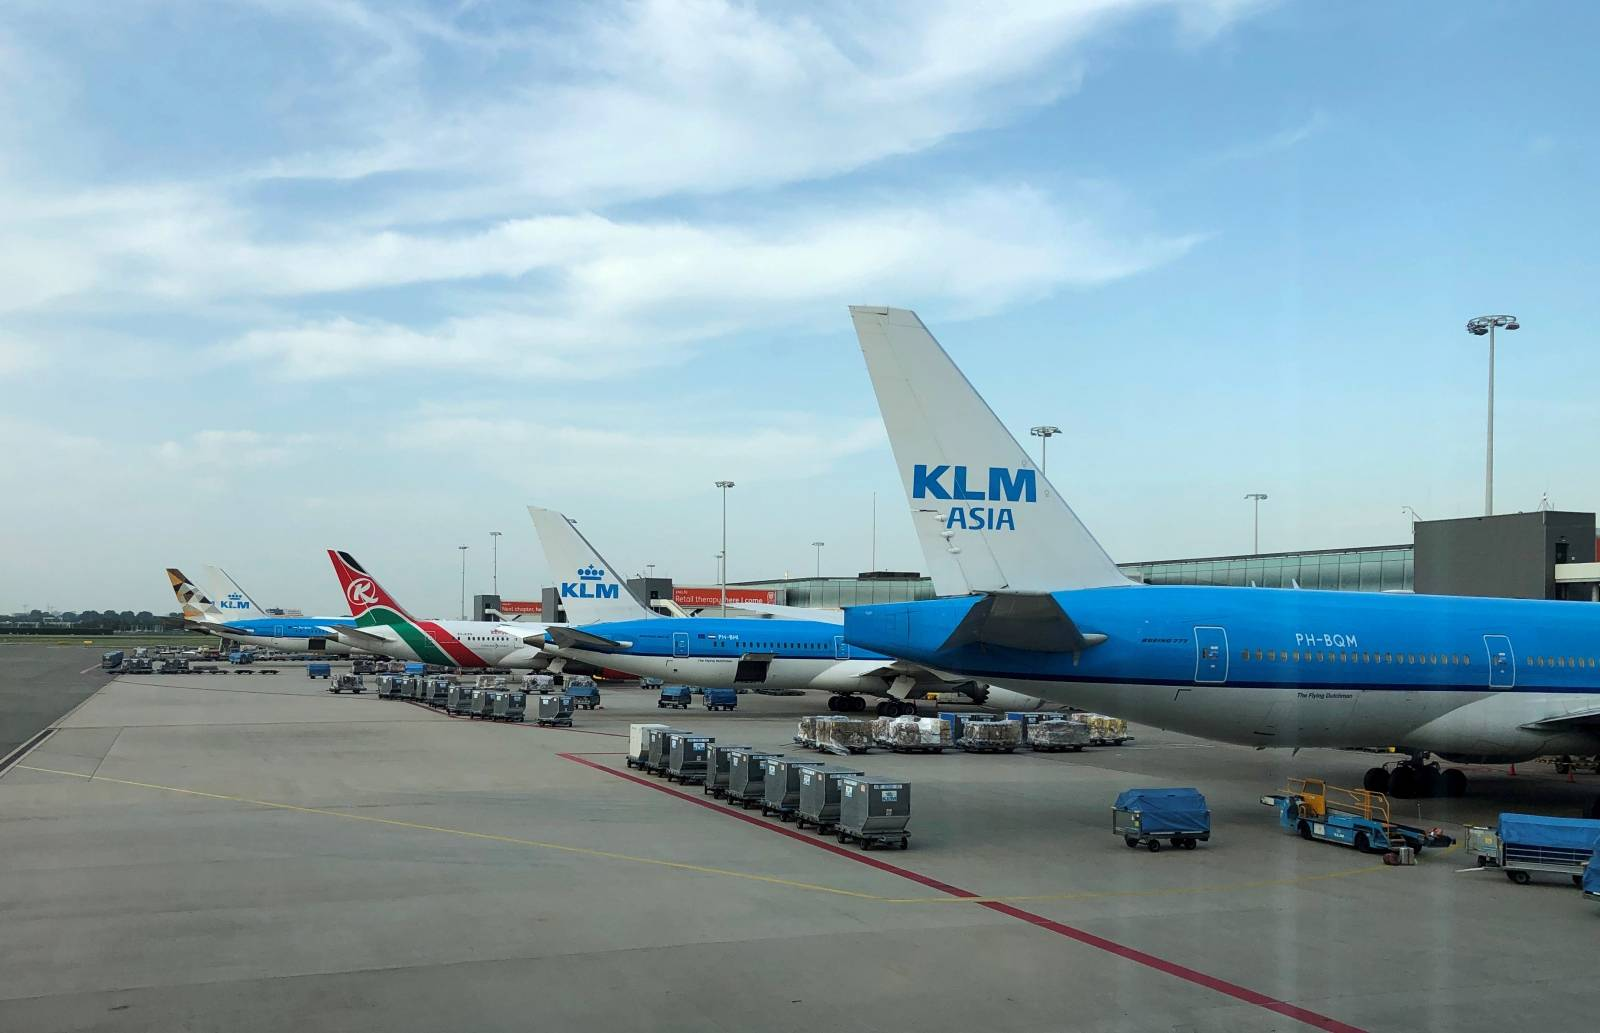 FILE PHOTO: Aircrafts are seen on the tarmac at Amsterdam Schiphol airport